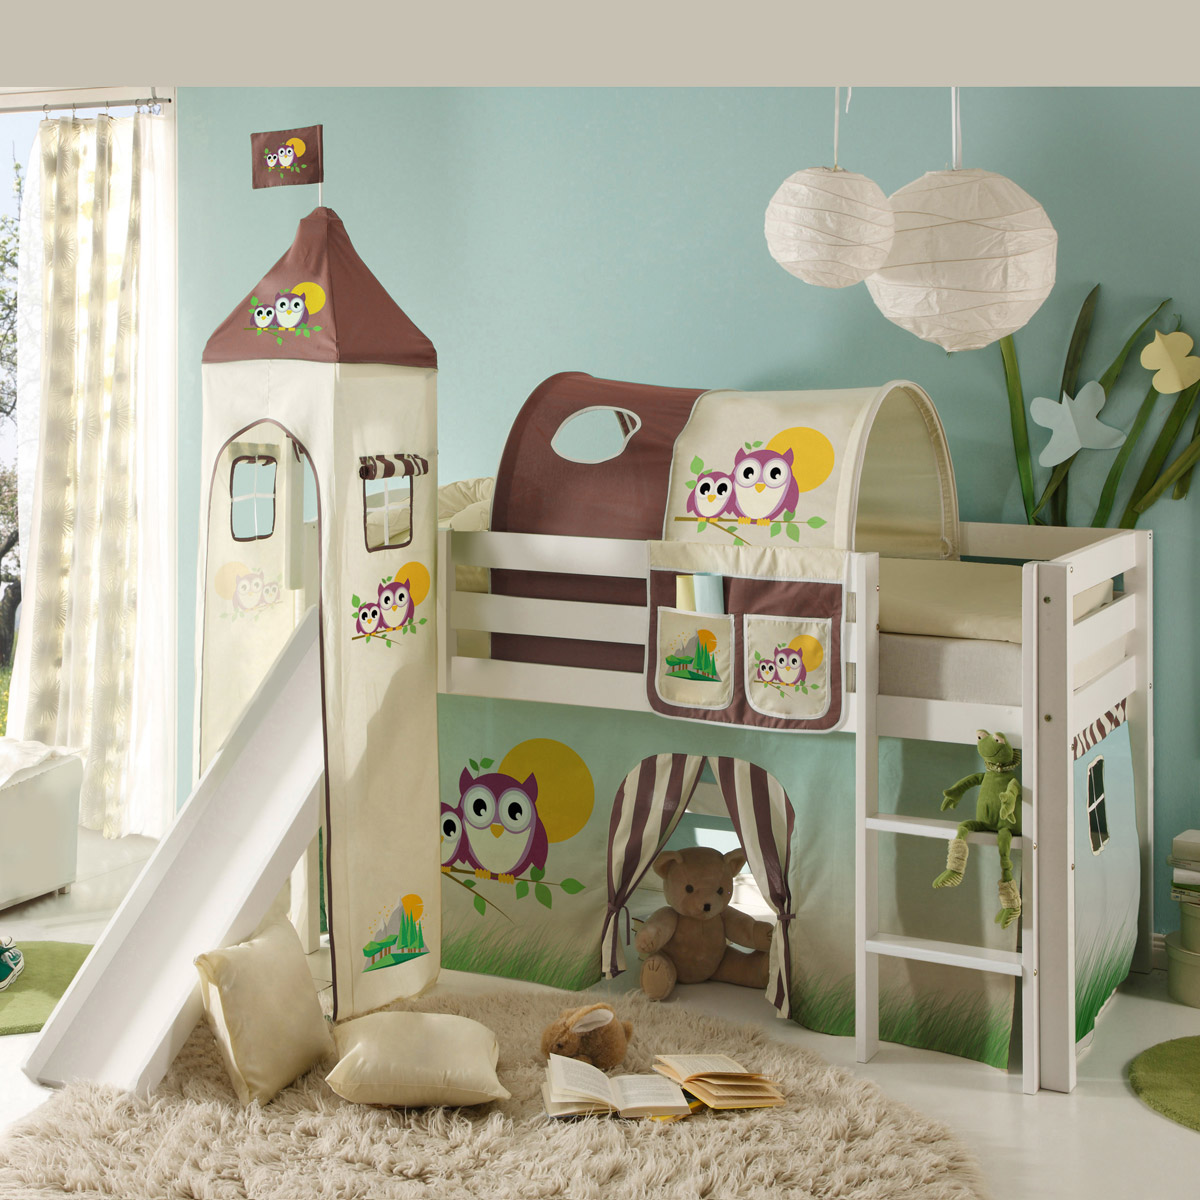 hochbett mit rutsche snoopy kinderzimmer bett 90x200. Black Bedroom Furniture Sets. Home Design Ideas